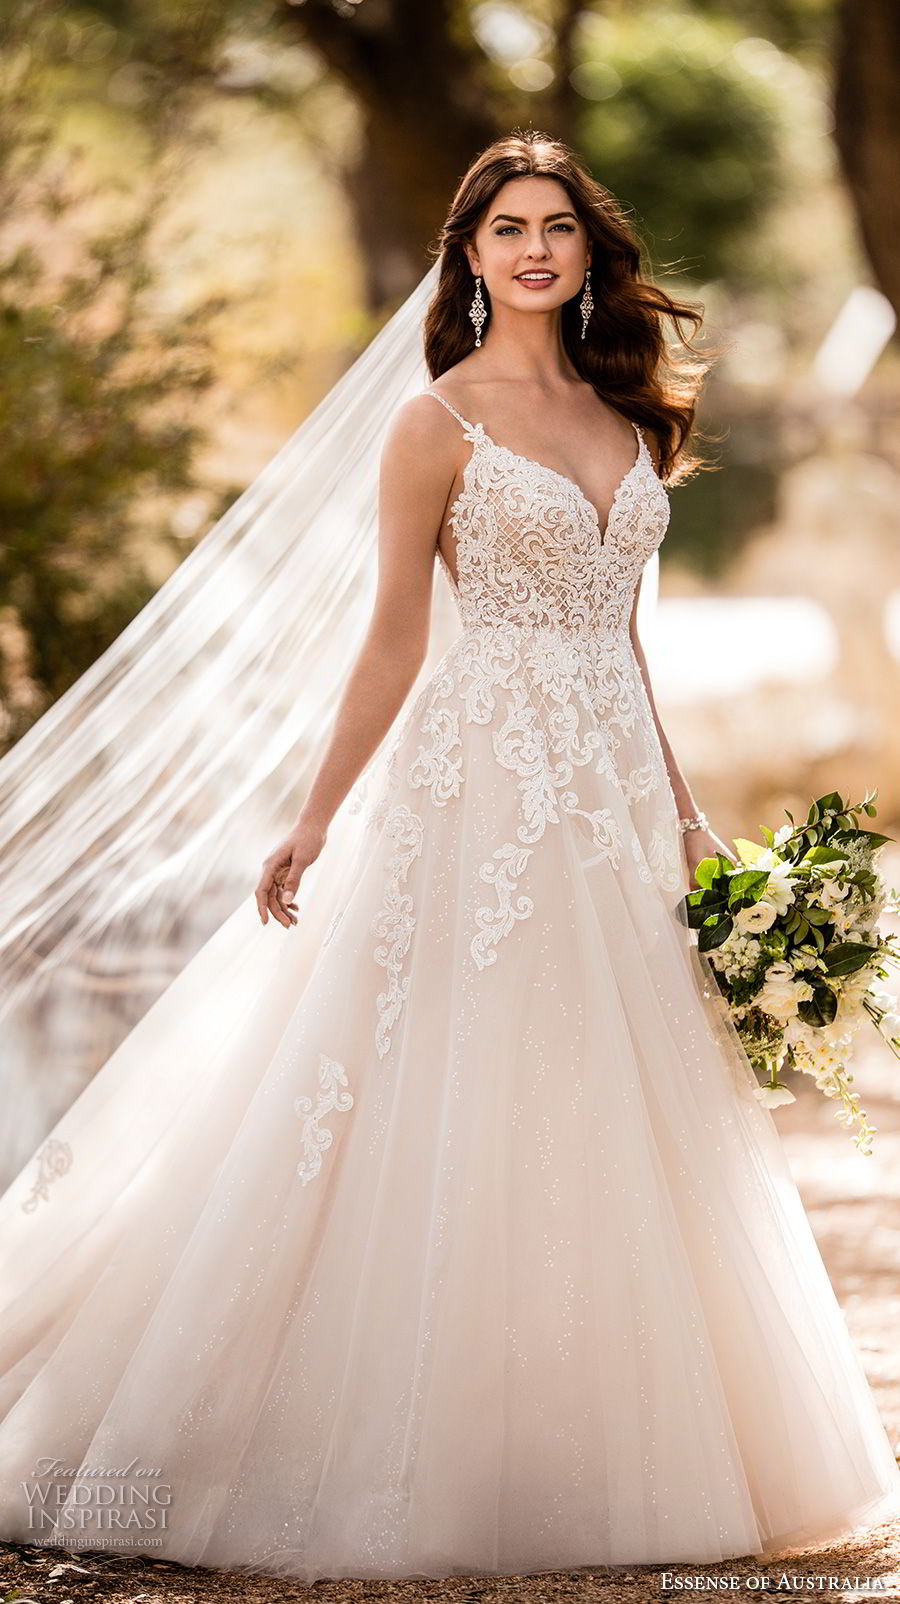 Essense of australia fall 2017 wedding dresses wedding for Image of wedding dresses